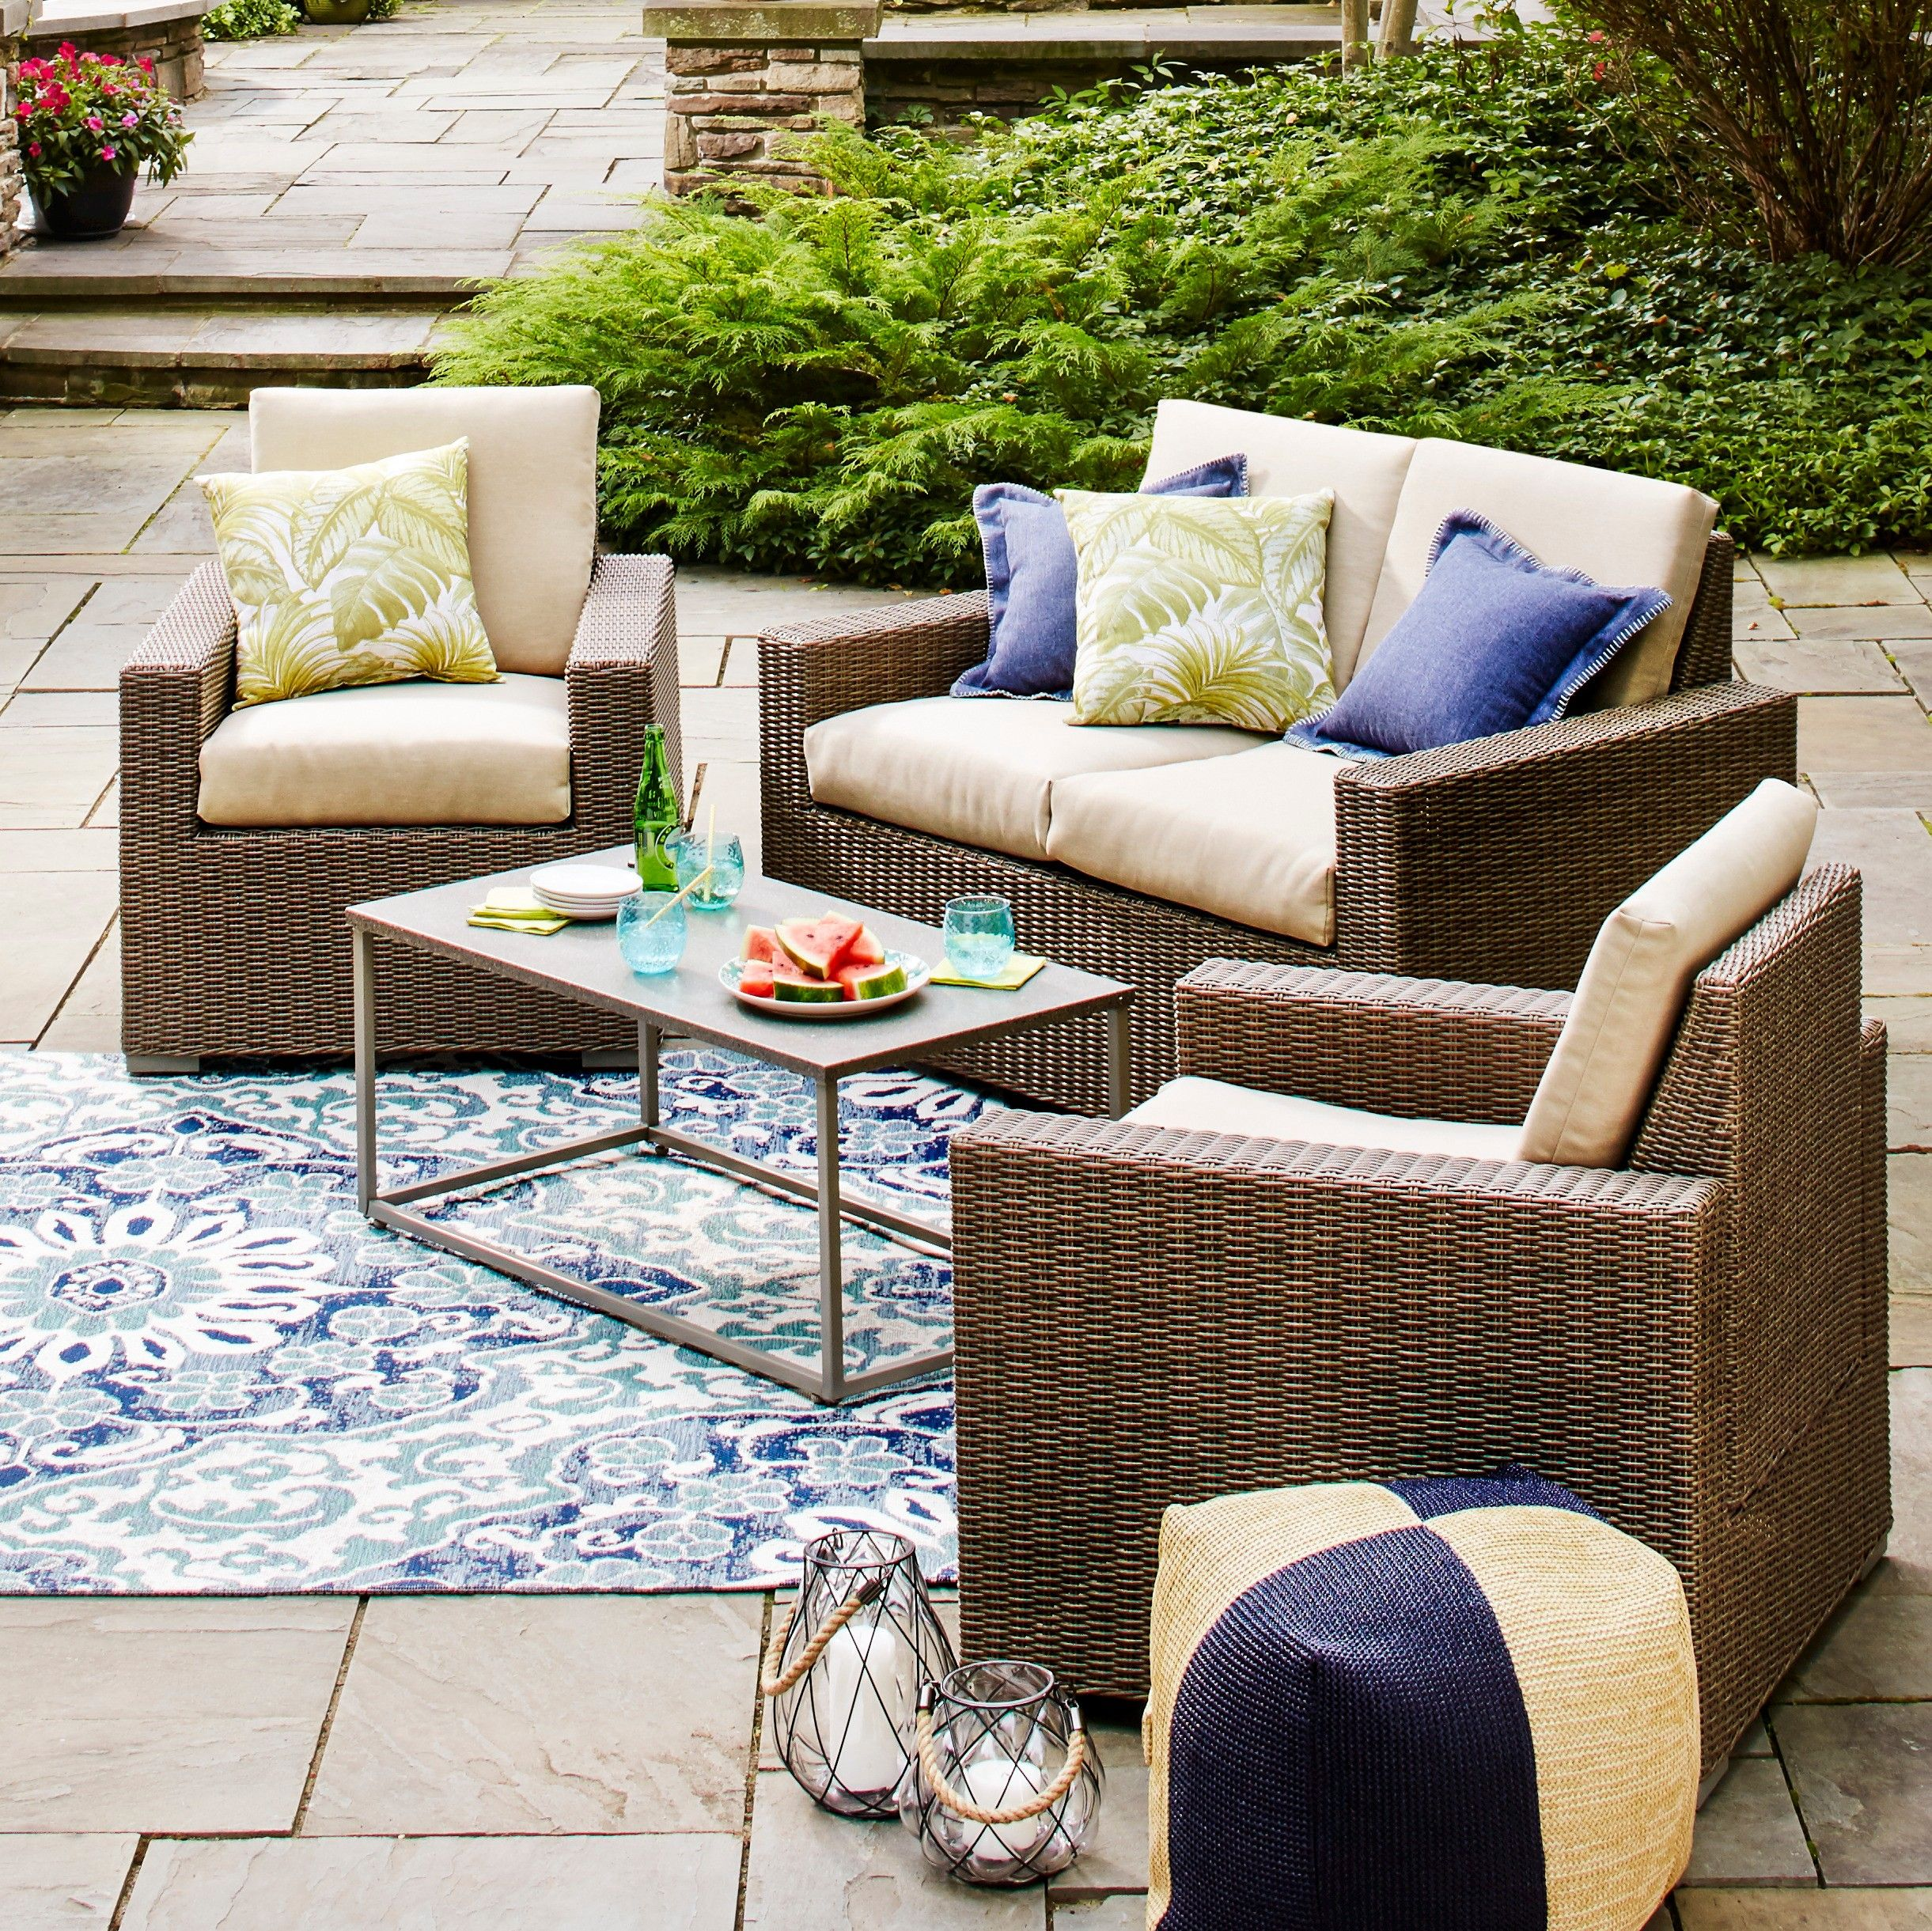 p Relax outdoors with the Threshold Heatherstone 4 piece Wicker